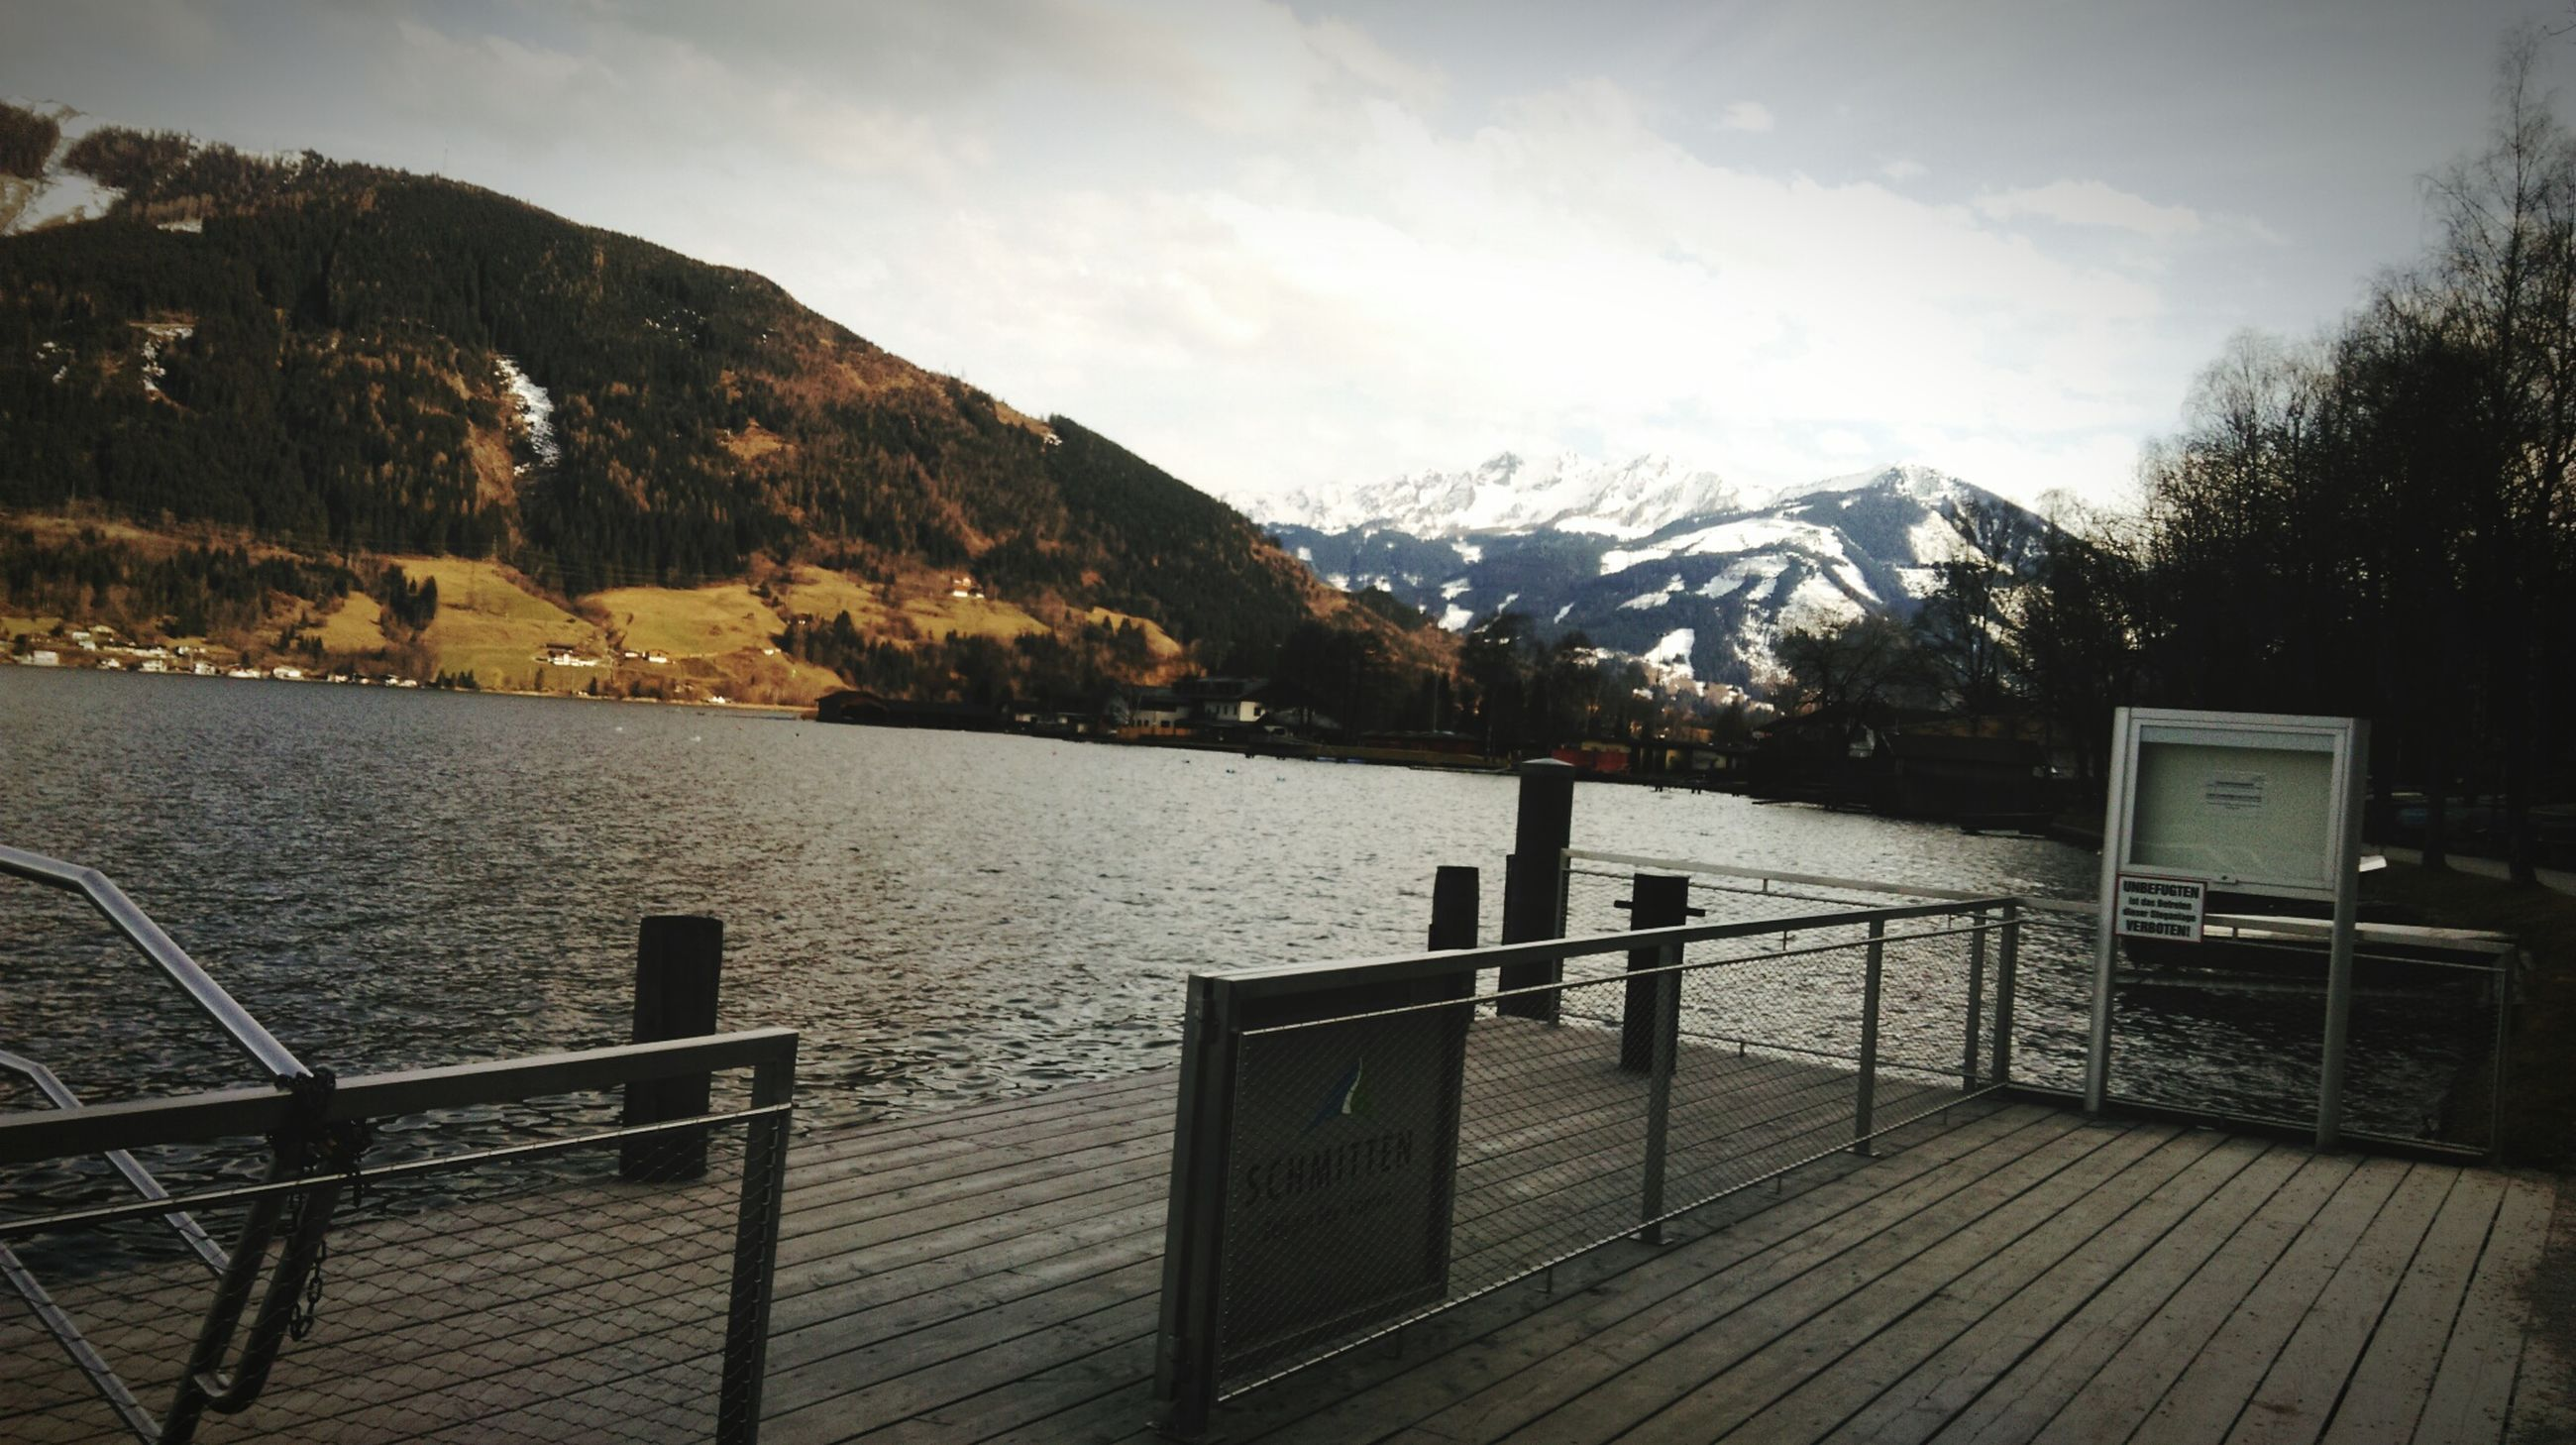 mountain, water, sky, railing, tranquility, tranquil scene, lake, scenics, nature, beauty in nature, cloud - sky, mountain range, tree, pier, built structure, river, bench, cloud, idyllic, outdoors